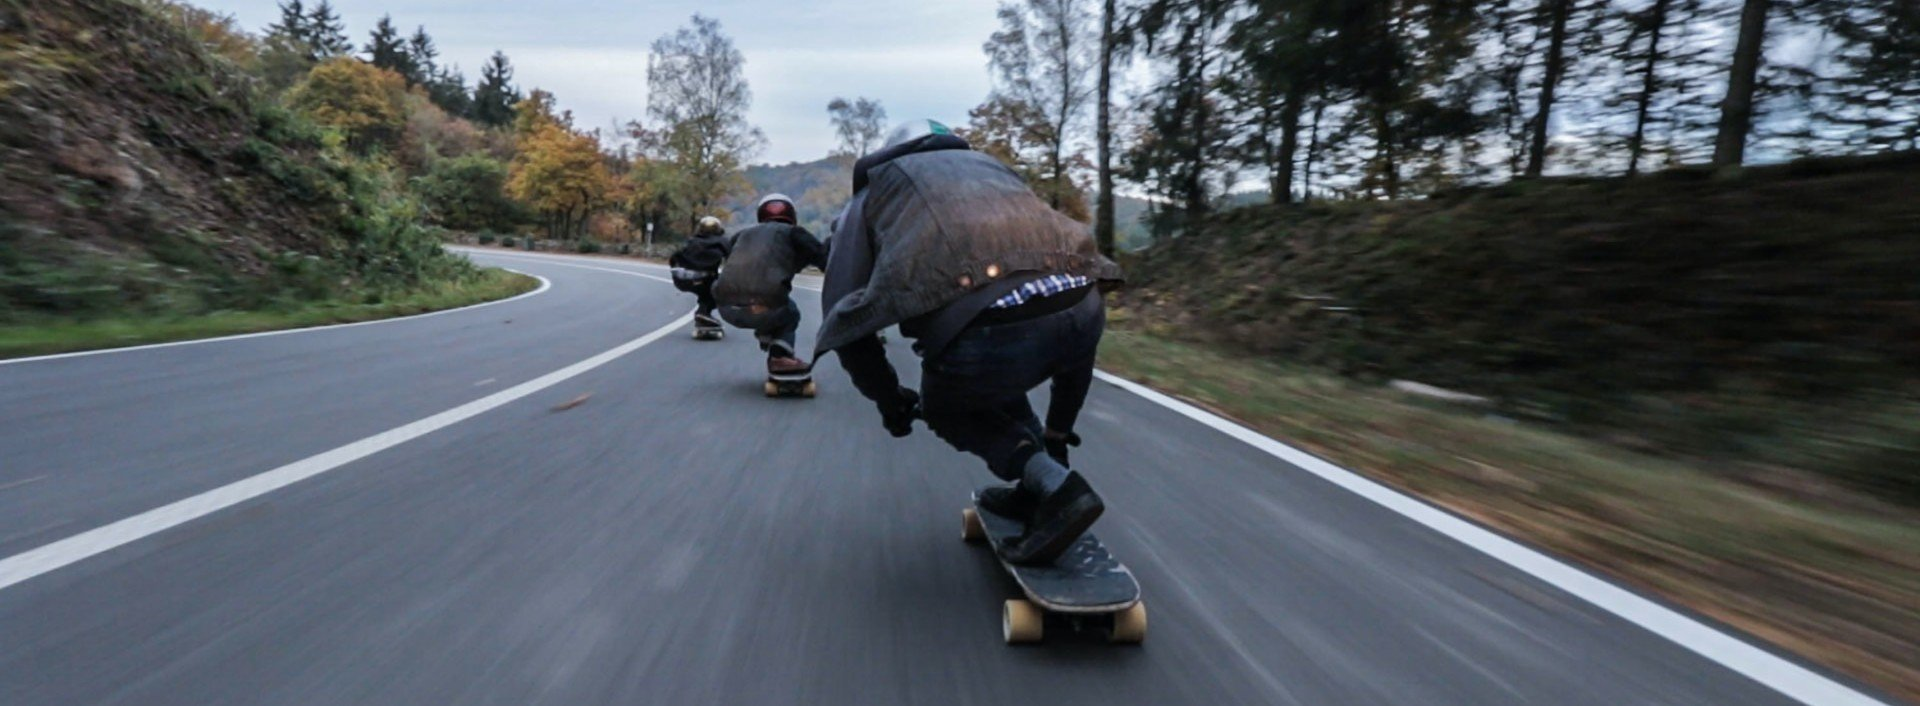 Contronyms: three skateboarders skate down a hill very fast (which is a word that has two separate meanings).